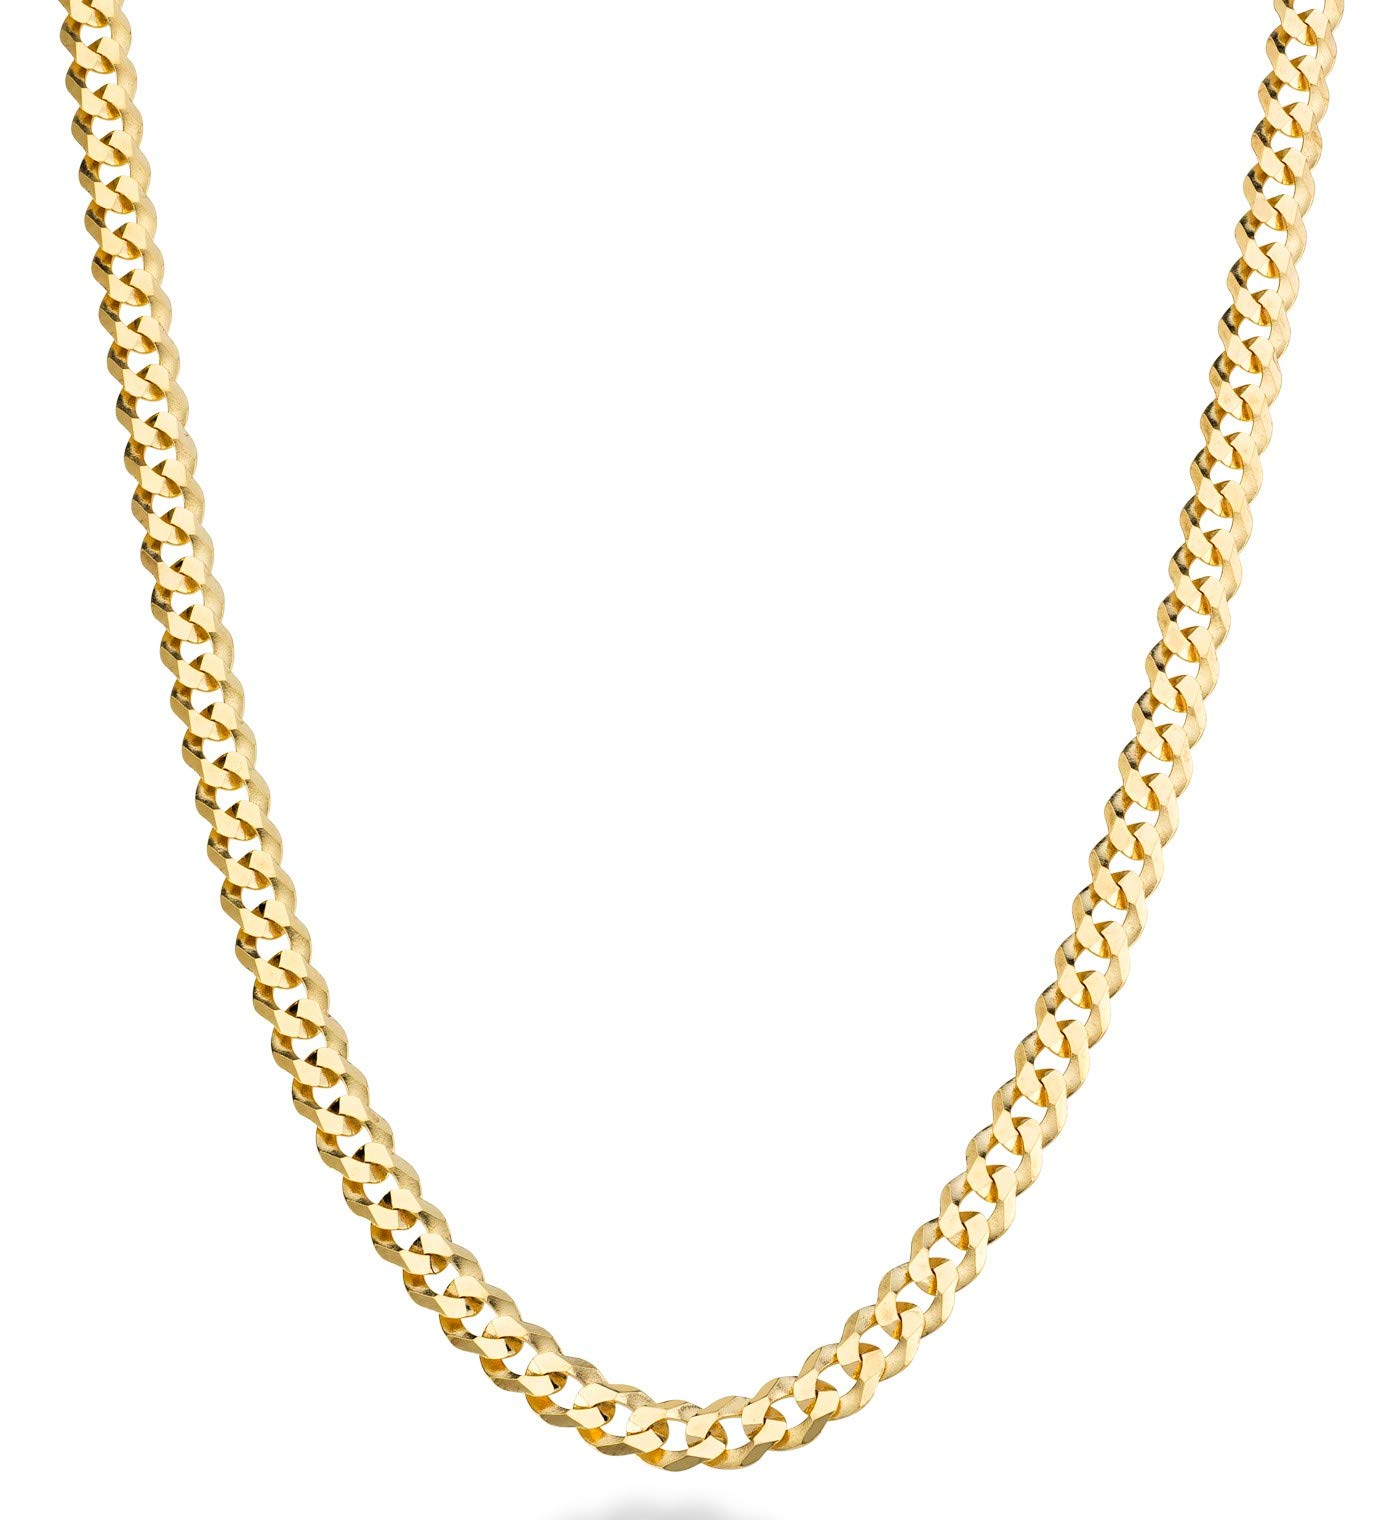 MiaBella Solid 18K Gold Over Sterling Silver Italian 5mm Diamond-Cut Cuban Link Curb Chain Necklace for Women Men, 16''-18''-20''-22''-24''-26''-30'' (26)